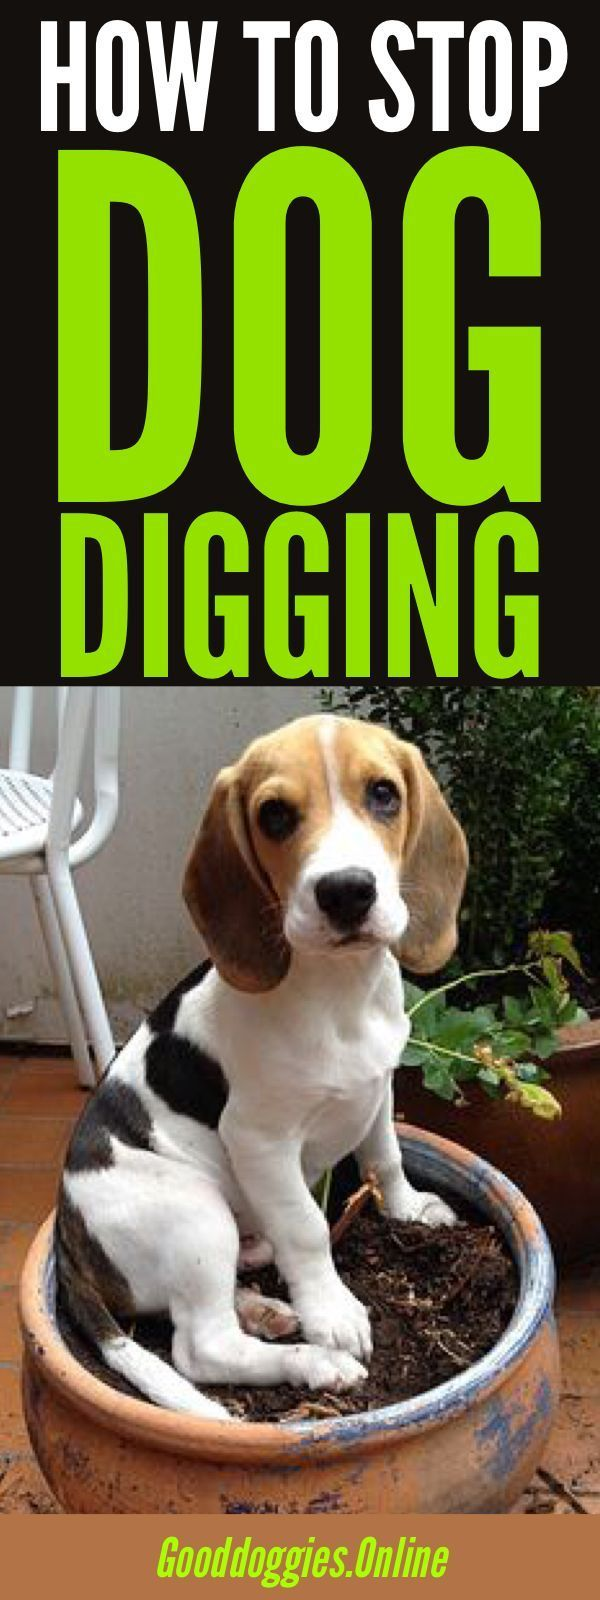 Here's how to stop your dog digging in the yard. Check out these dog training tips. #dogs #digging via @KaufmannsPuppy